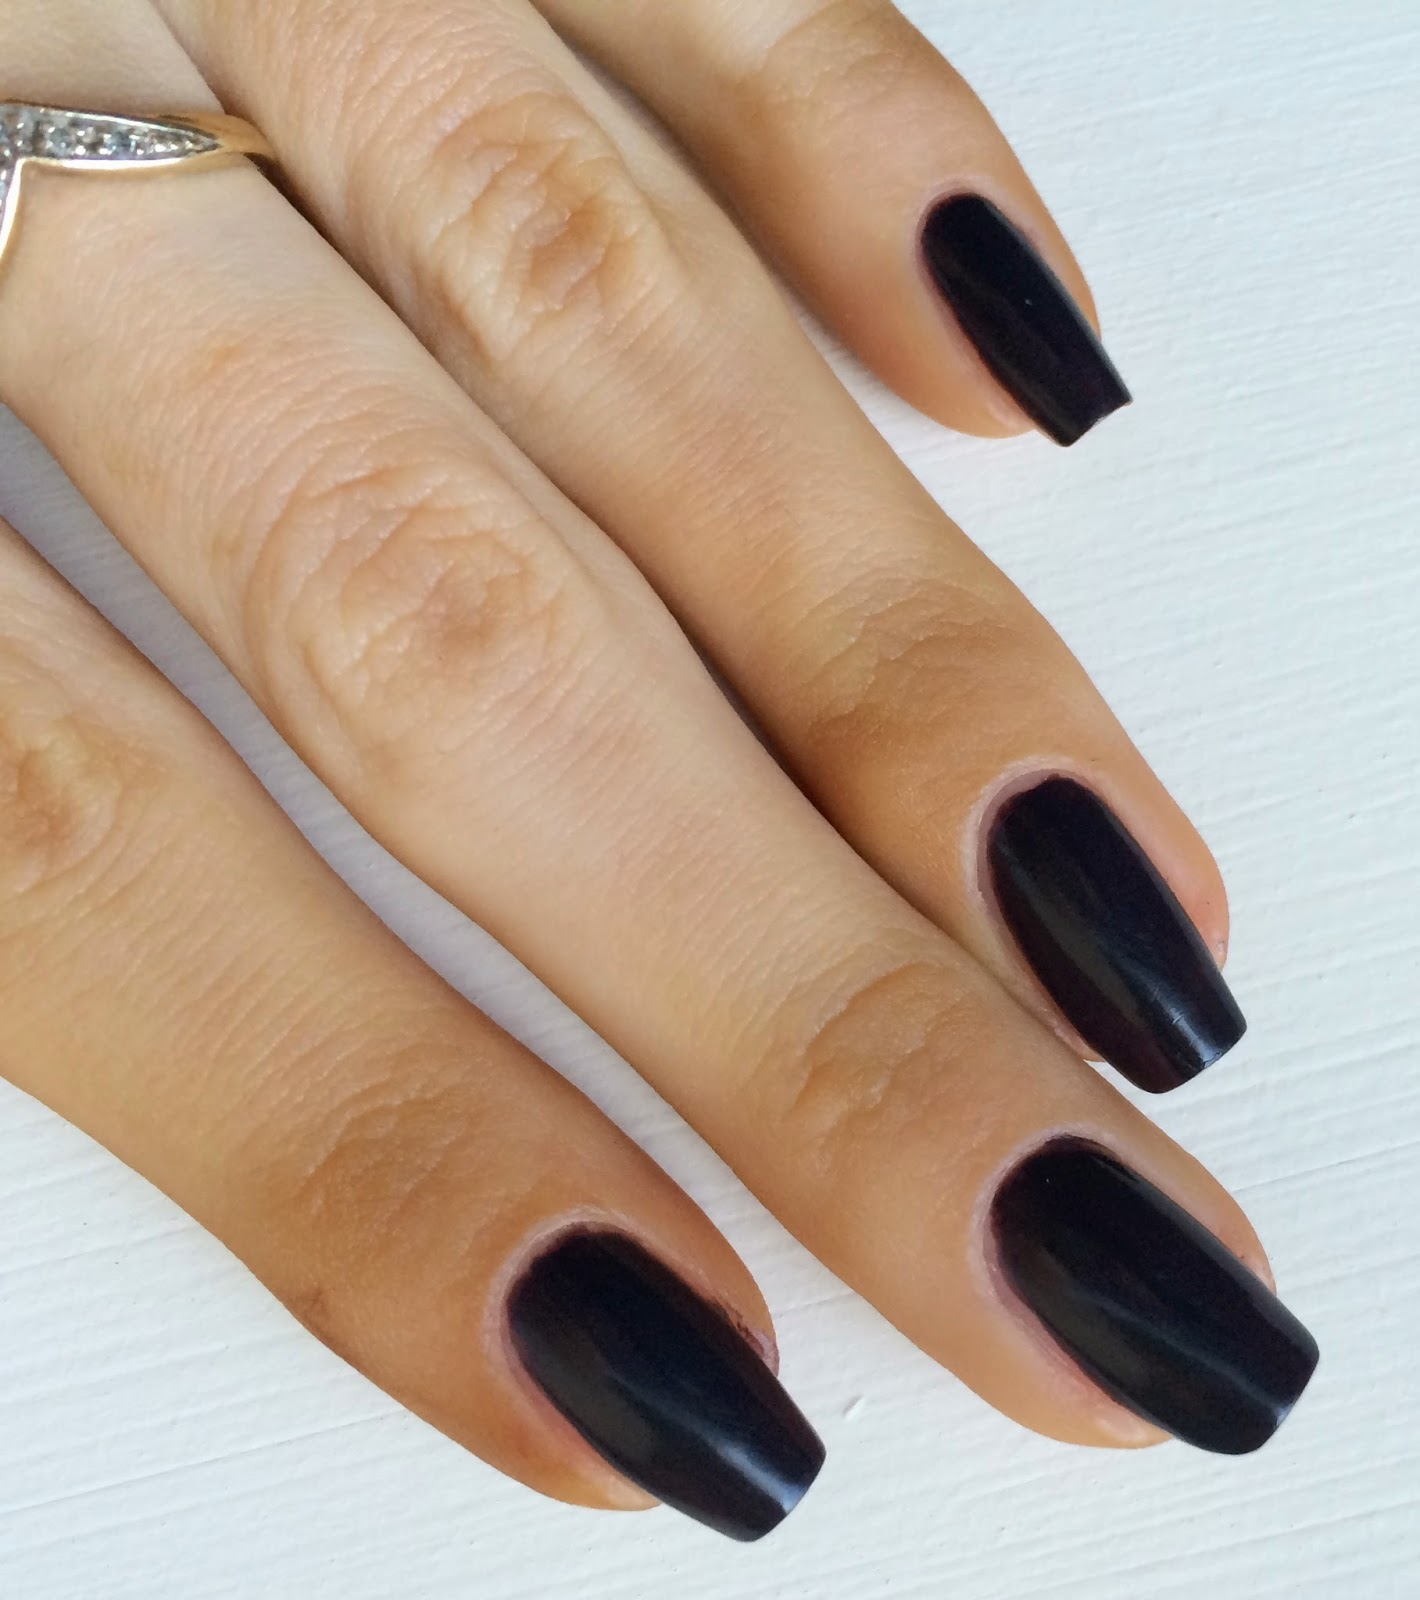 barry-m-nail-paint-nightshade-2014-swatches